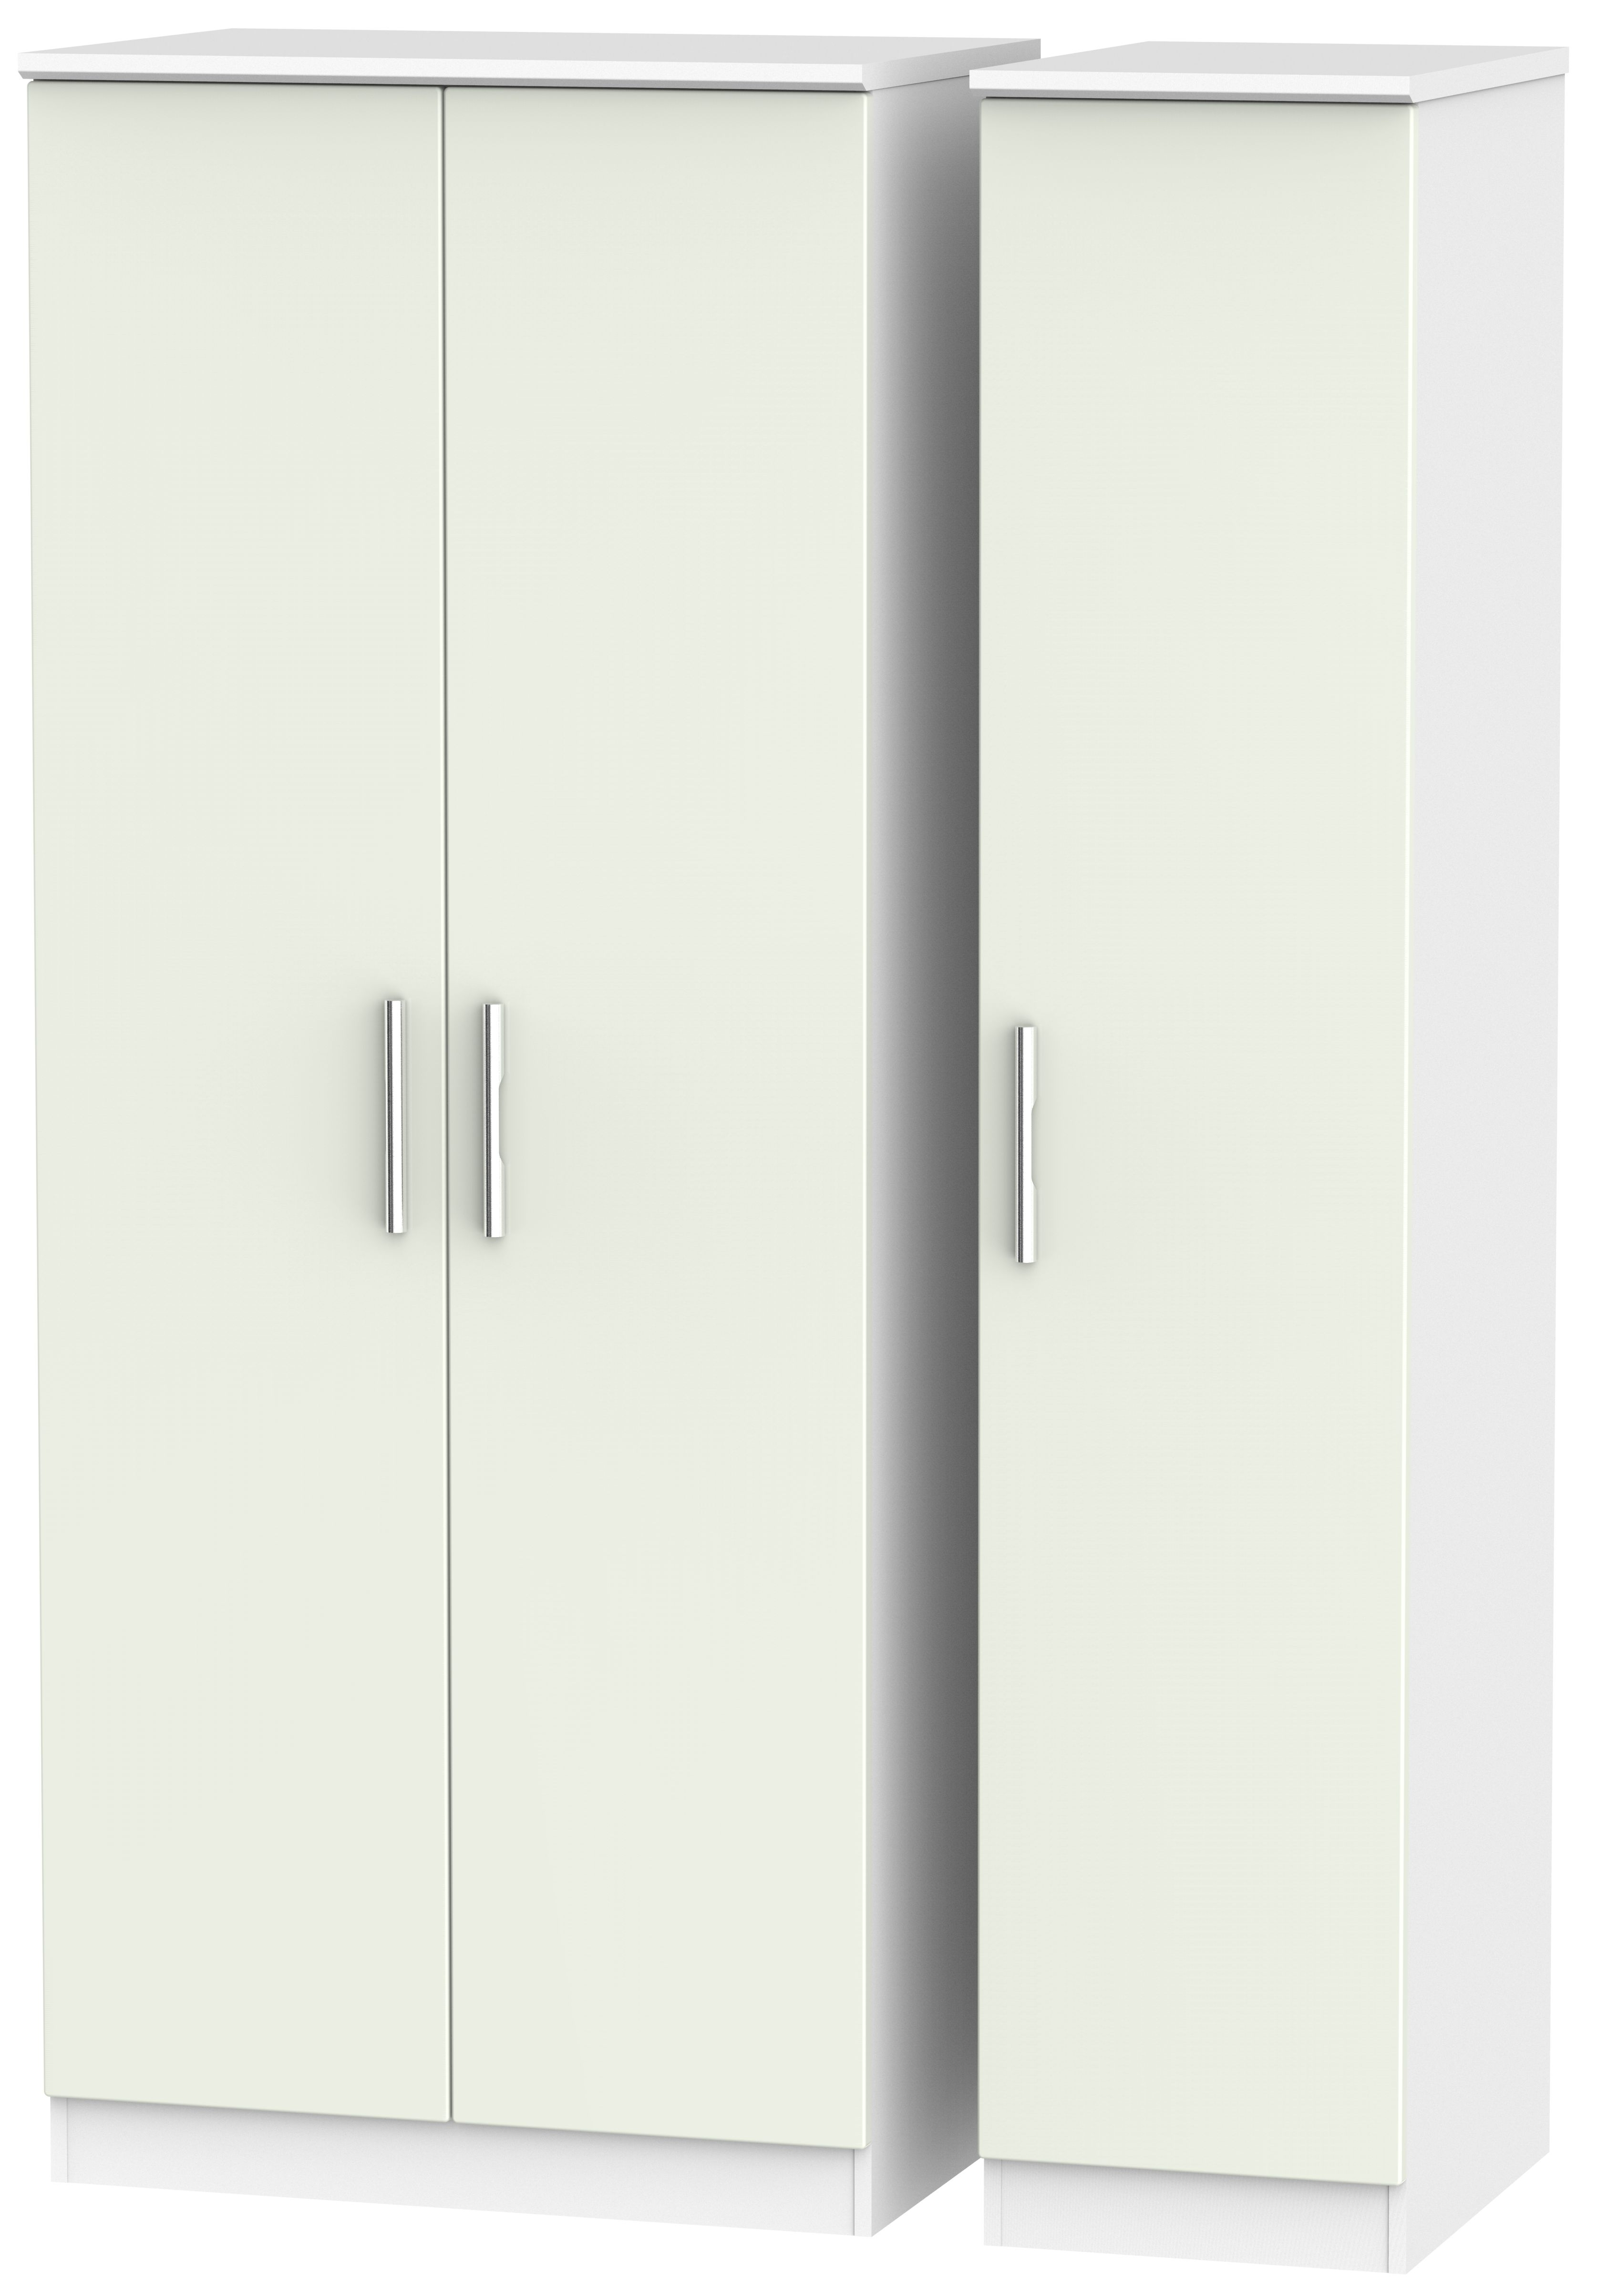 Knightsbridge 3 Door Wardrobe - Kaschmir Matt and White